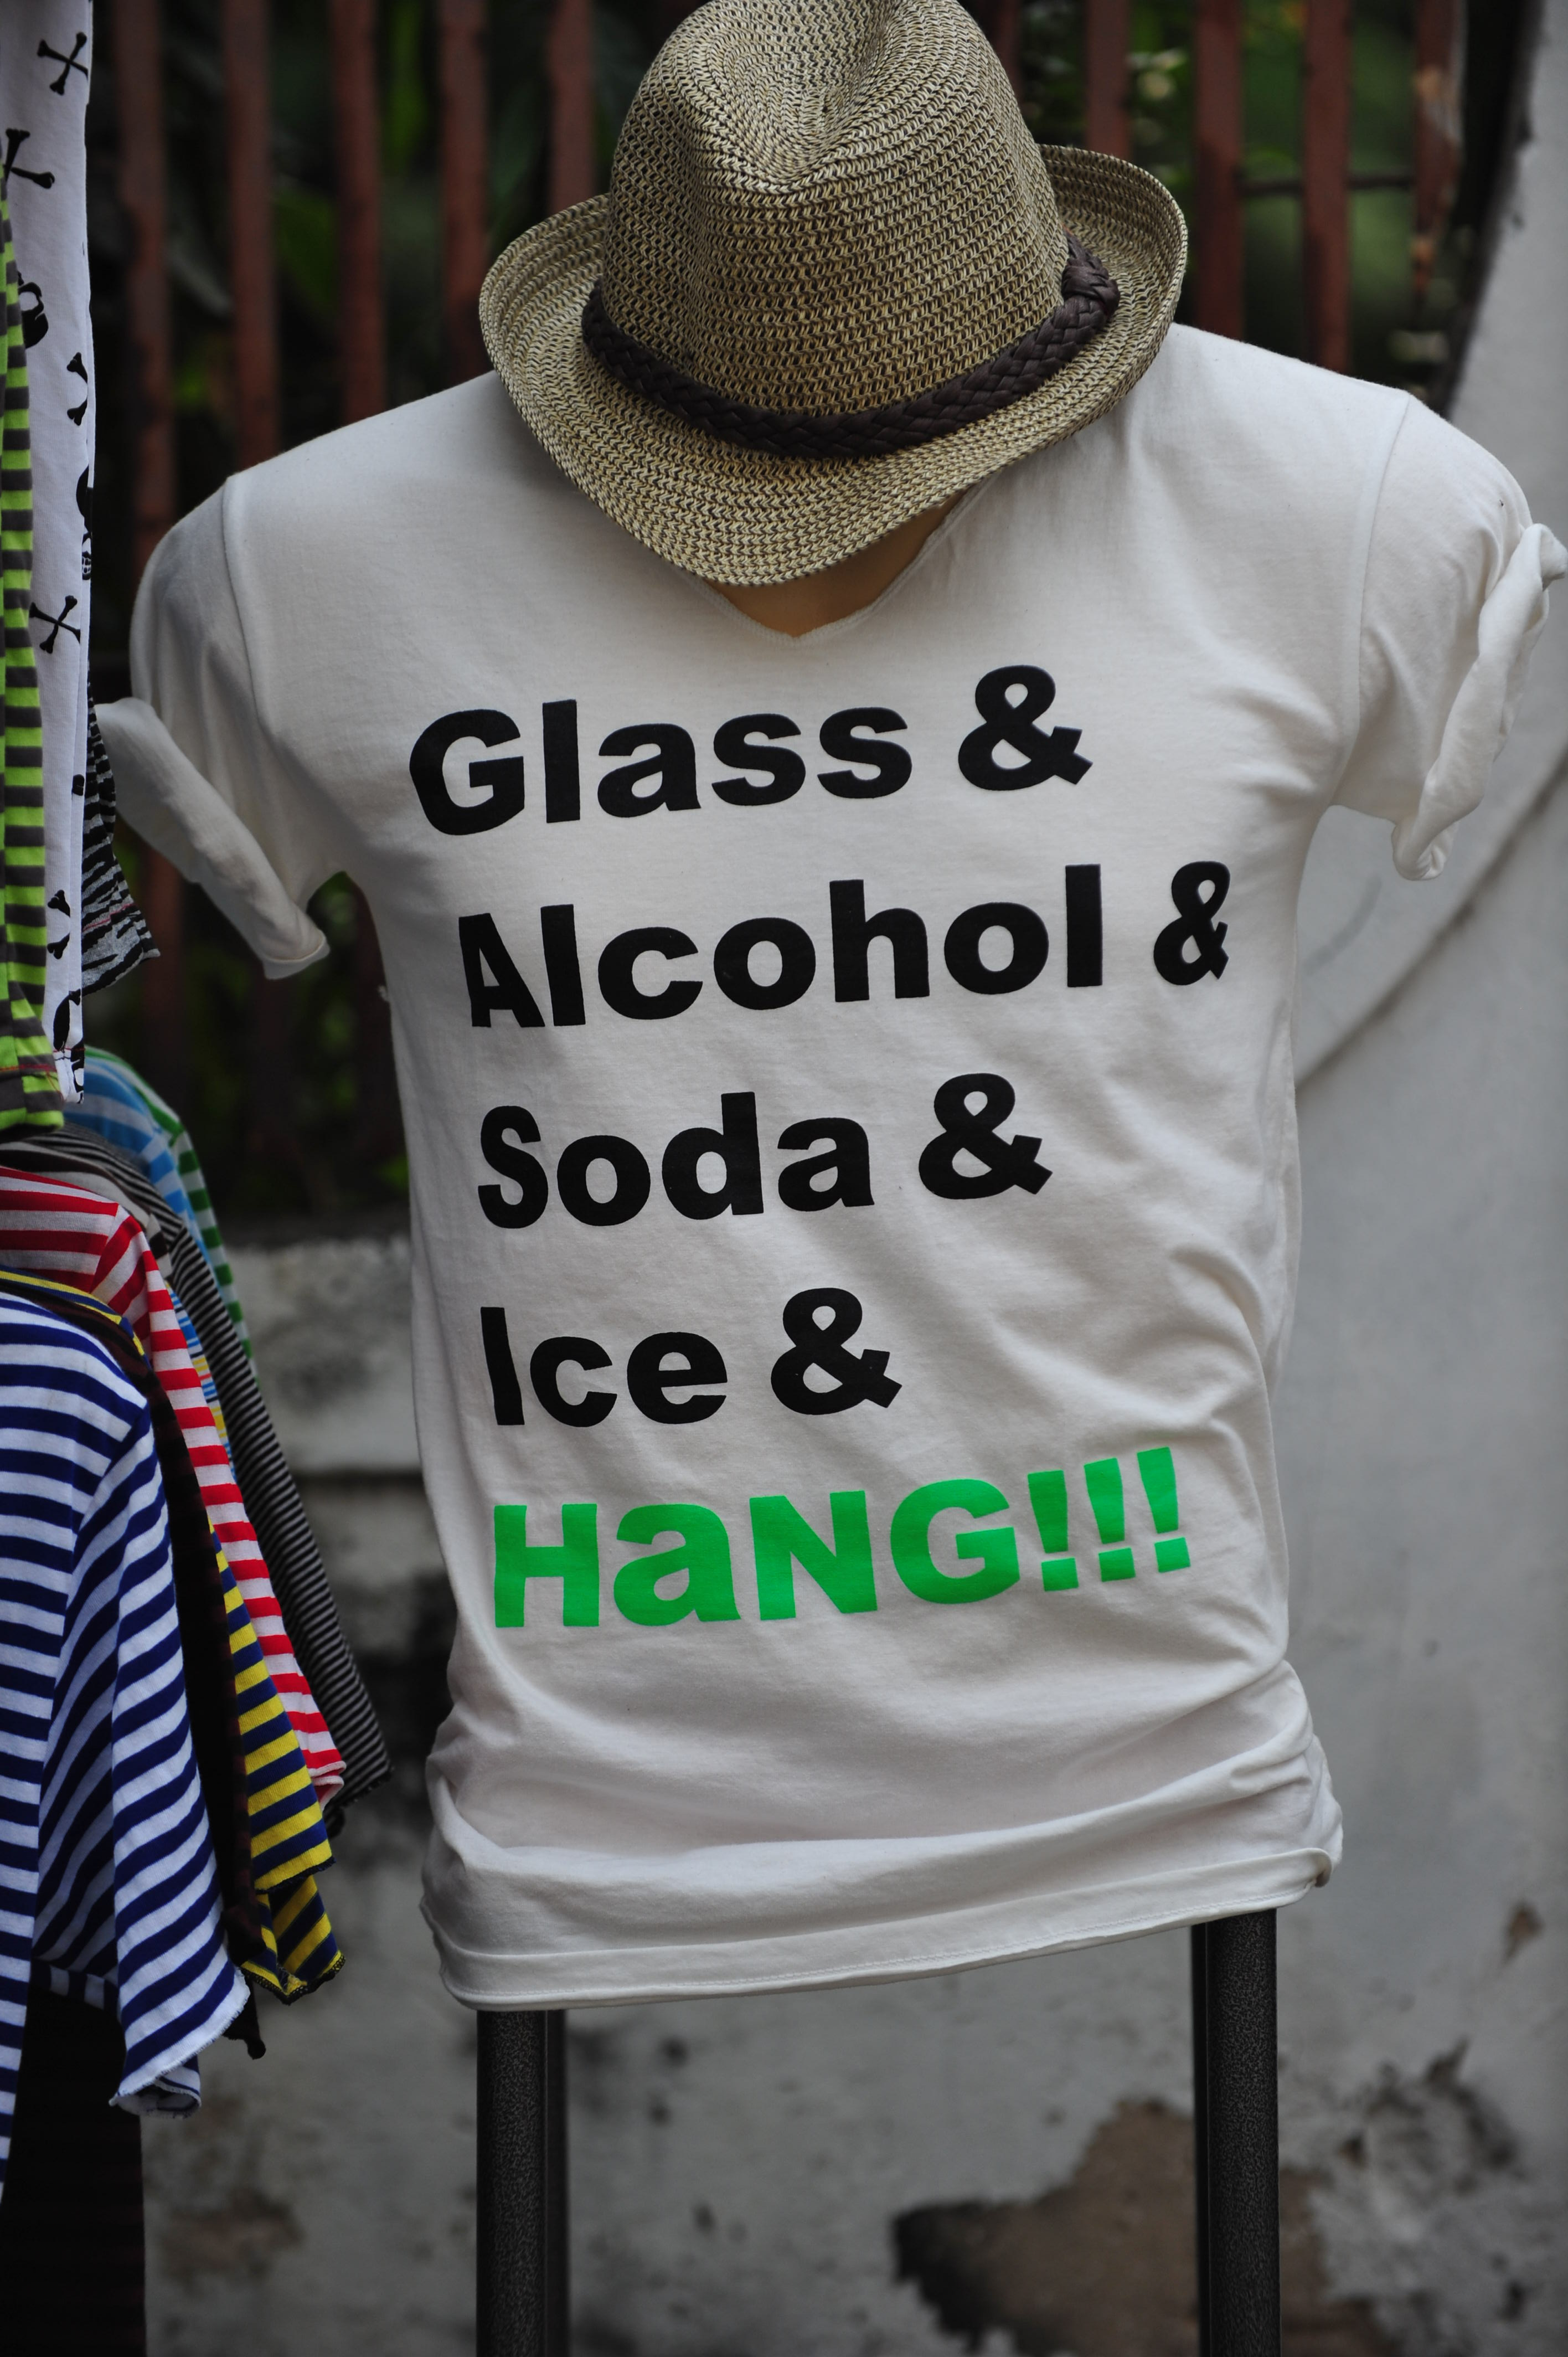 Glass & Alcohol & Soda & Ice & Hang!!!3 Comments